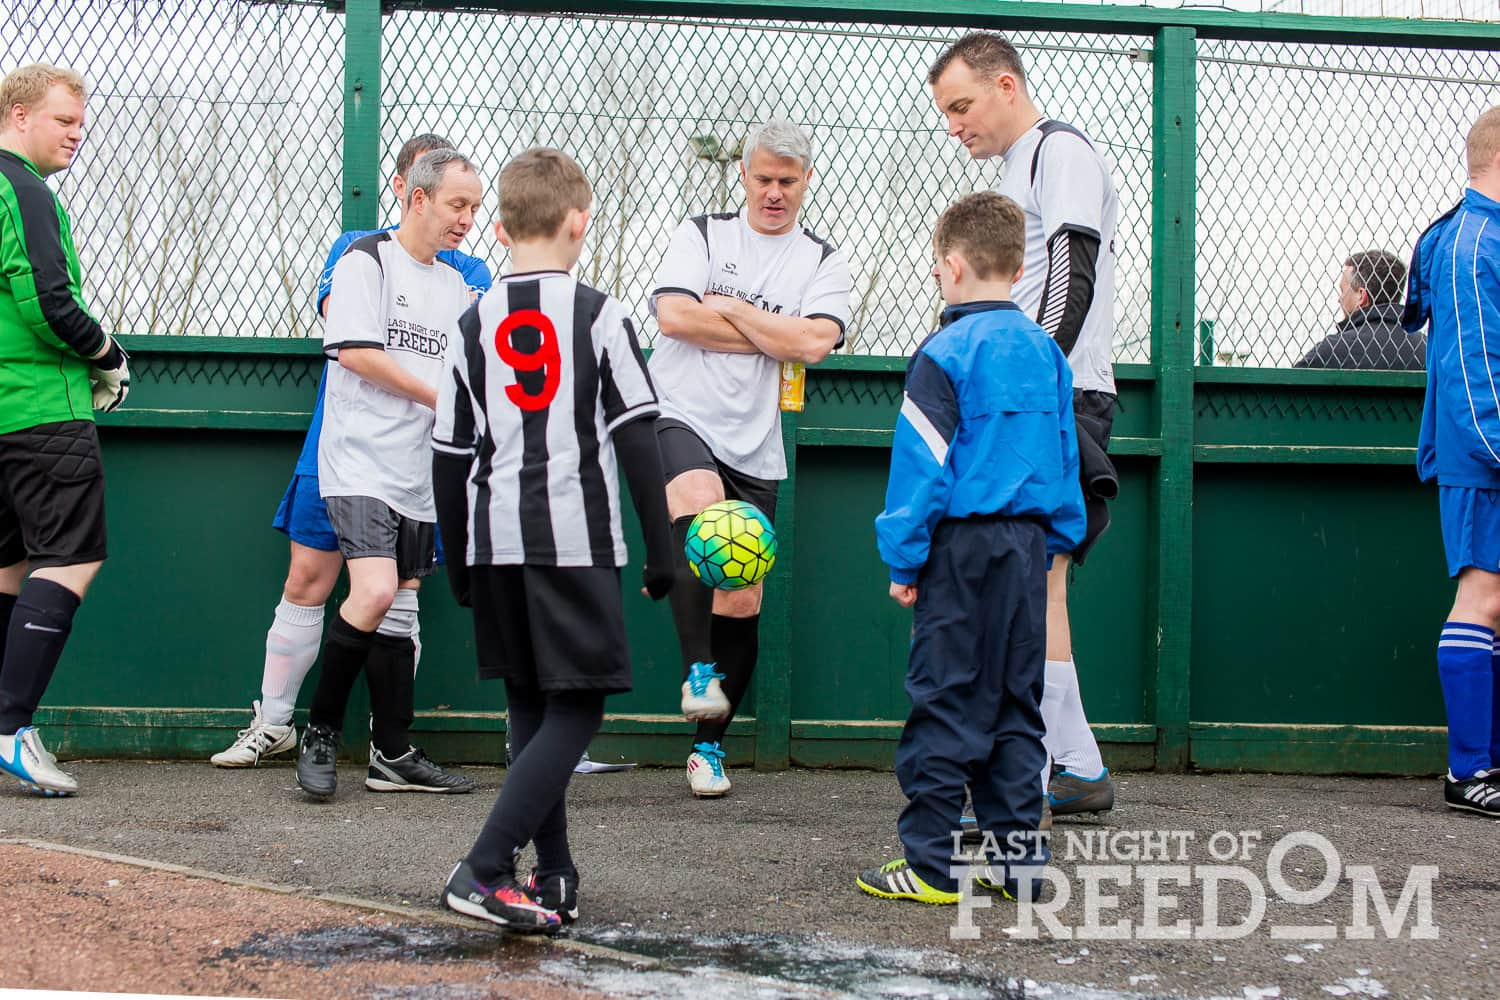 Rob Lee playing football with kids on the edge of the pitch